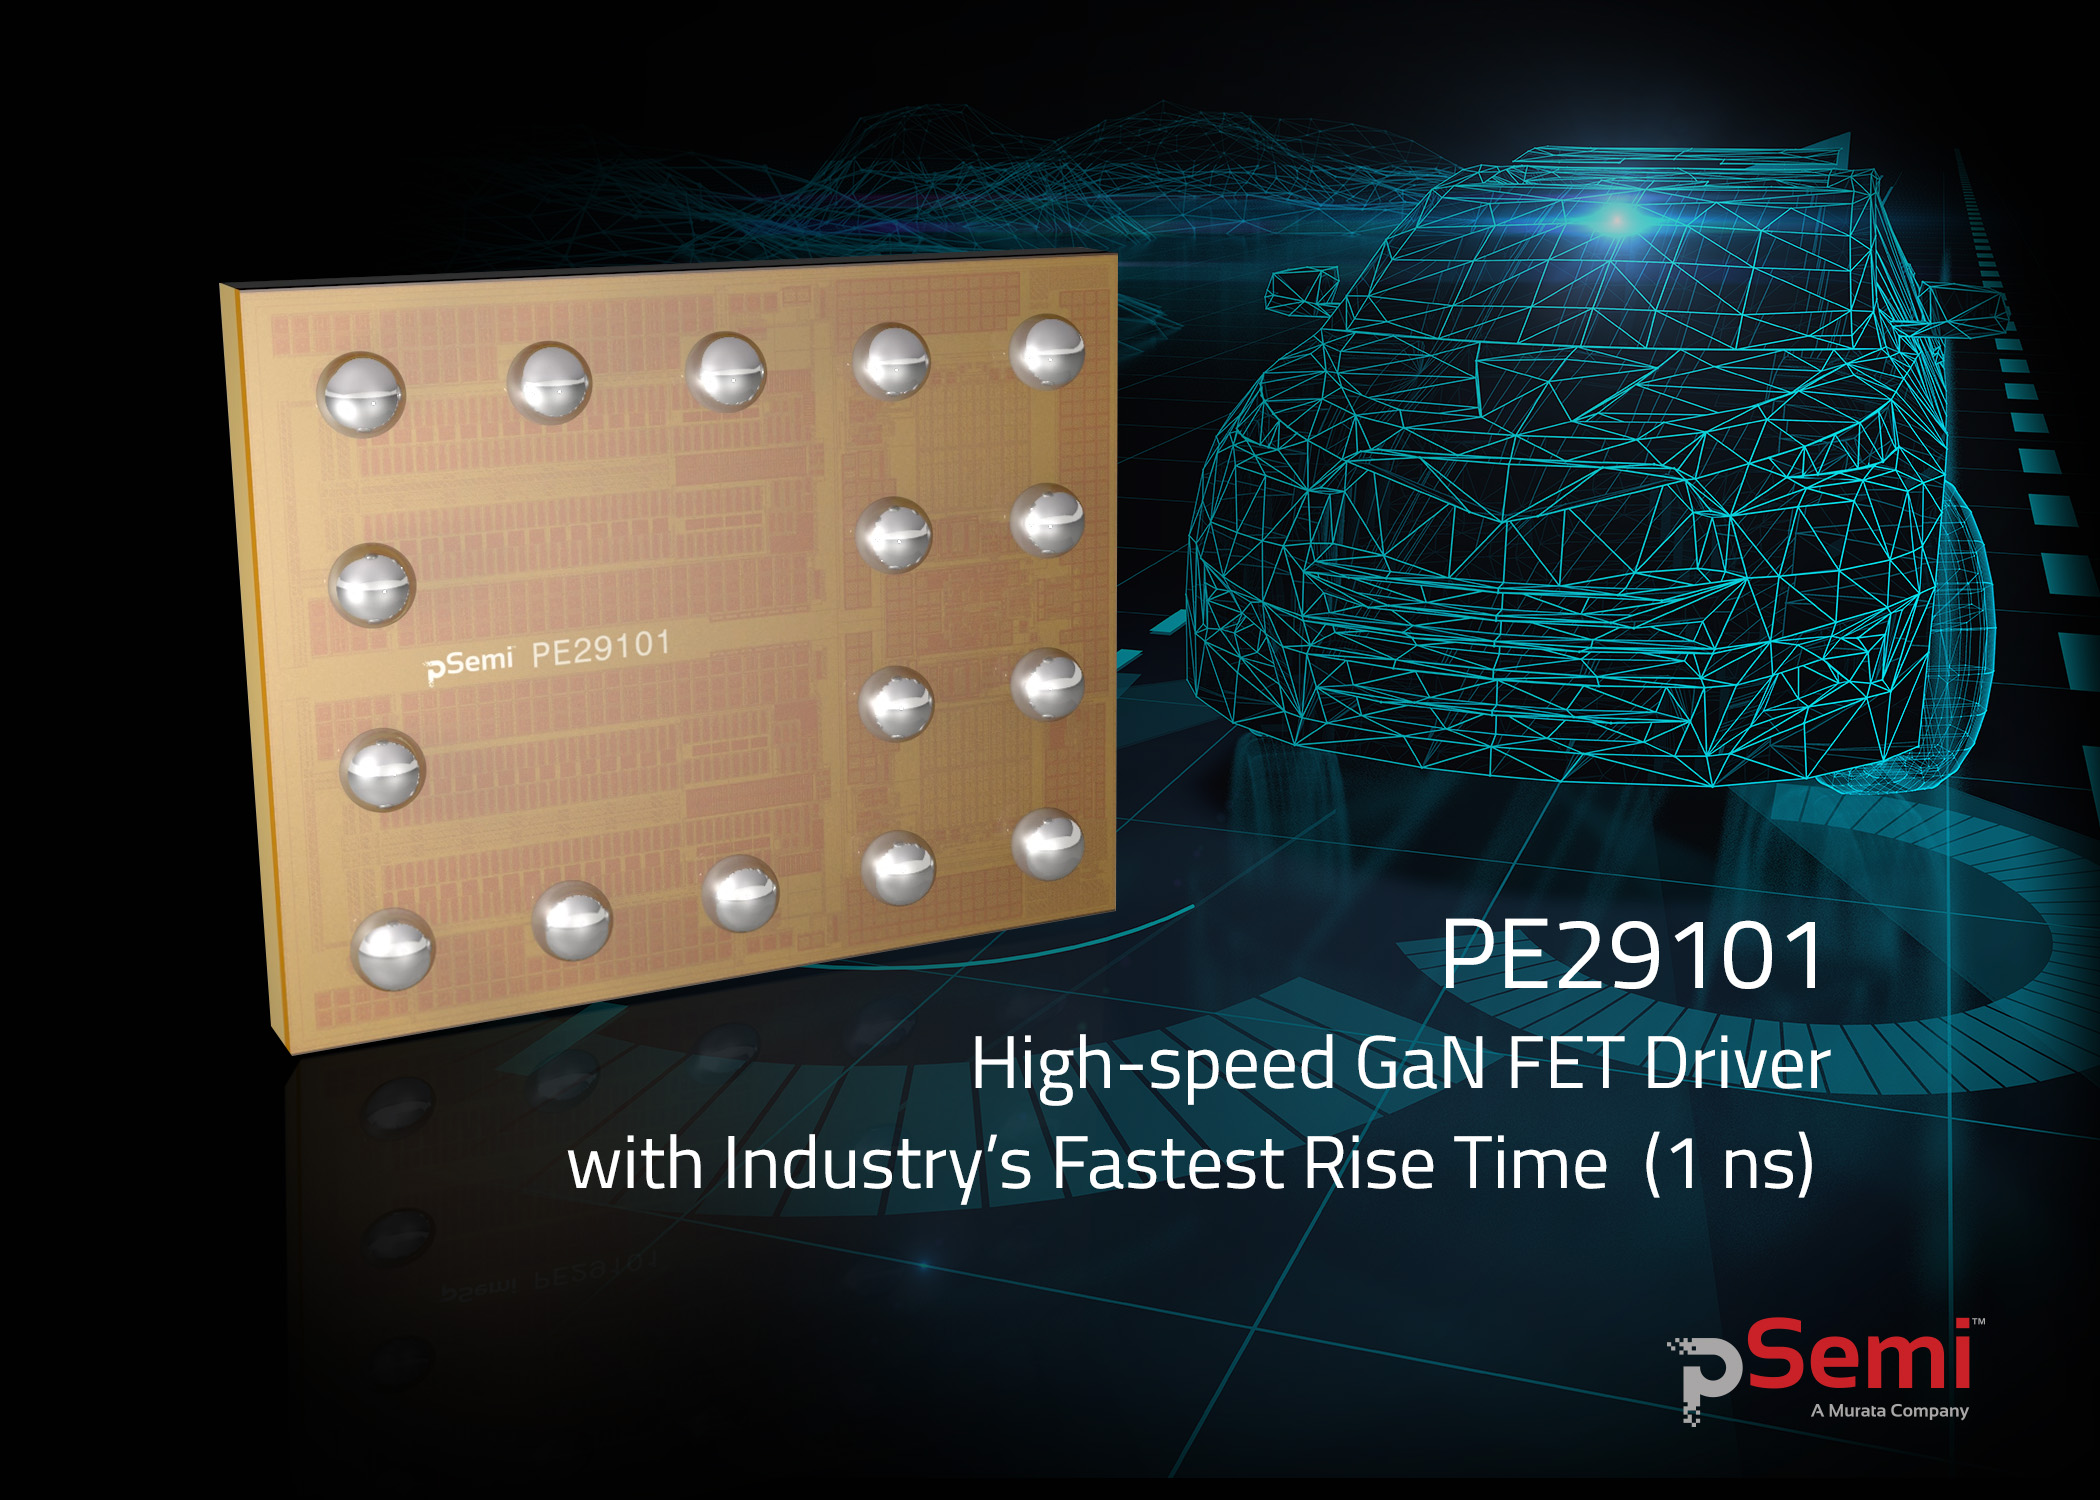 Psemi Gan Fet Driver Delivers Fast Switching To Solid State Lidar Pulsed Laser Diode Circuit Cost Pe29101 For Applications